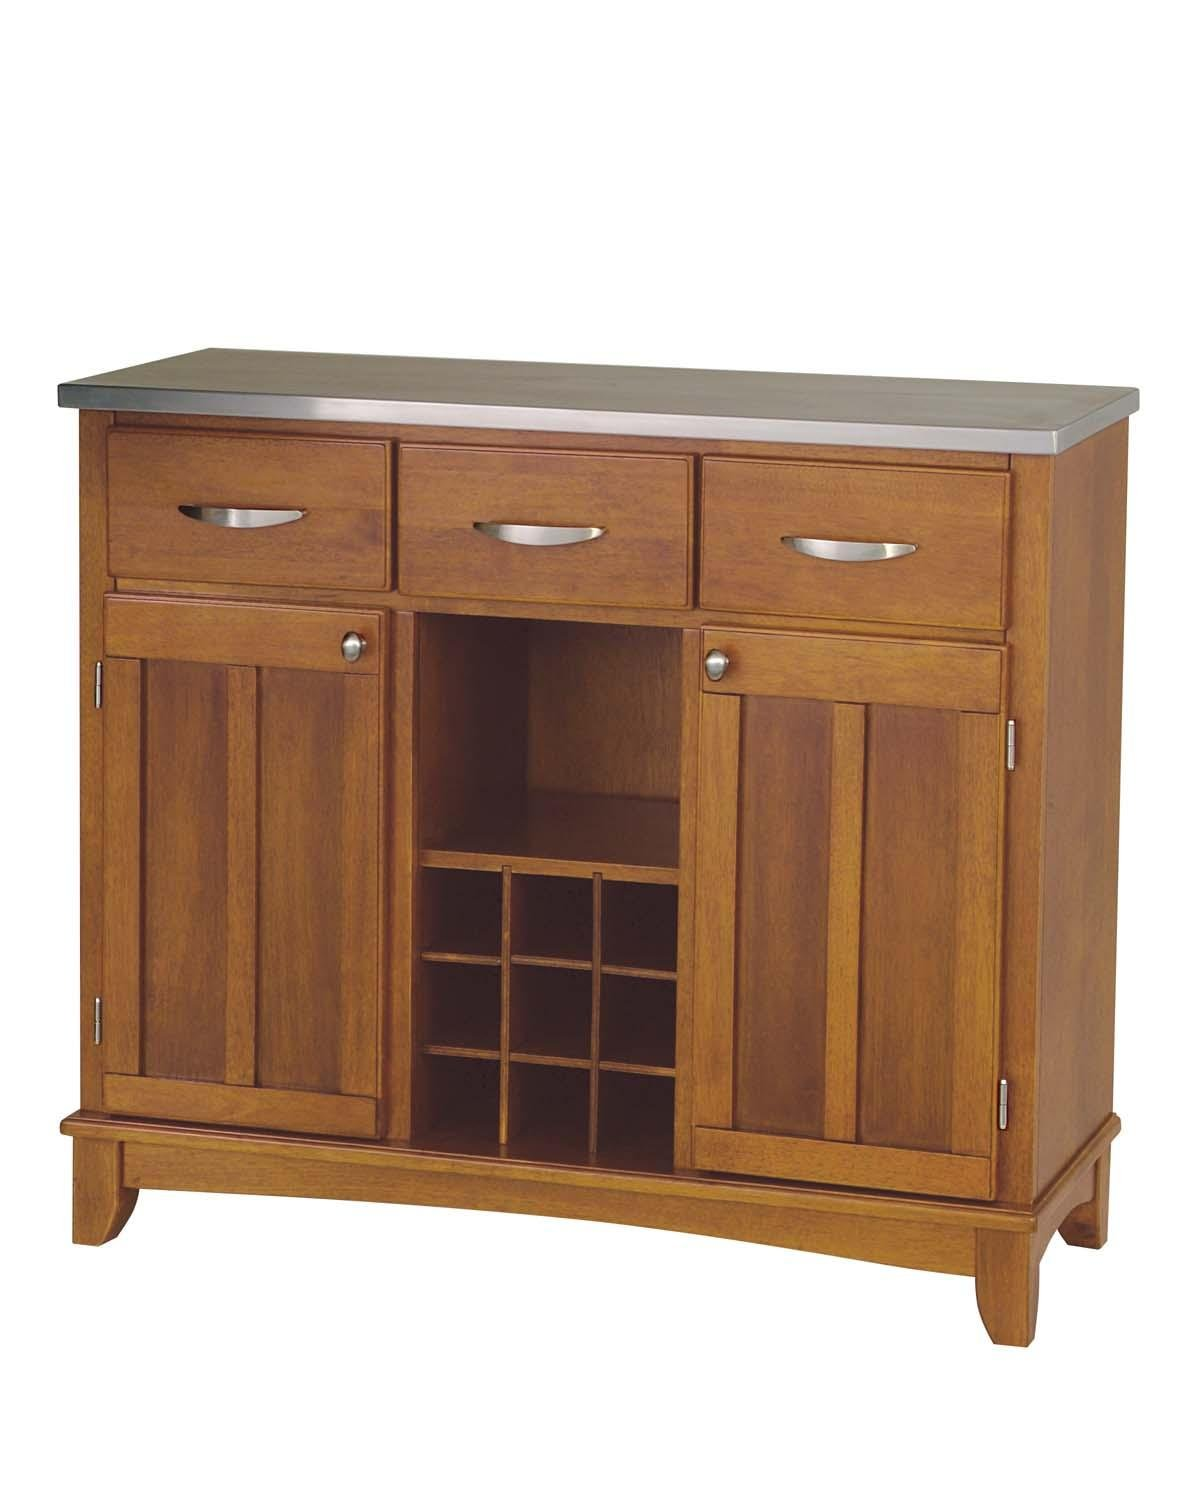 Home Styles 5100-0063 Large Wood Server Sideboard